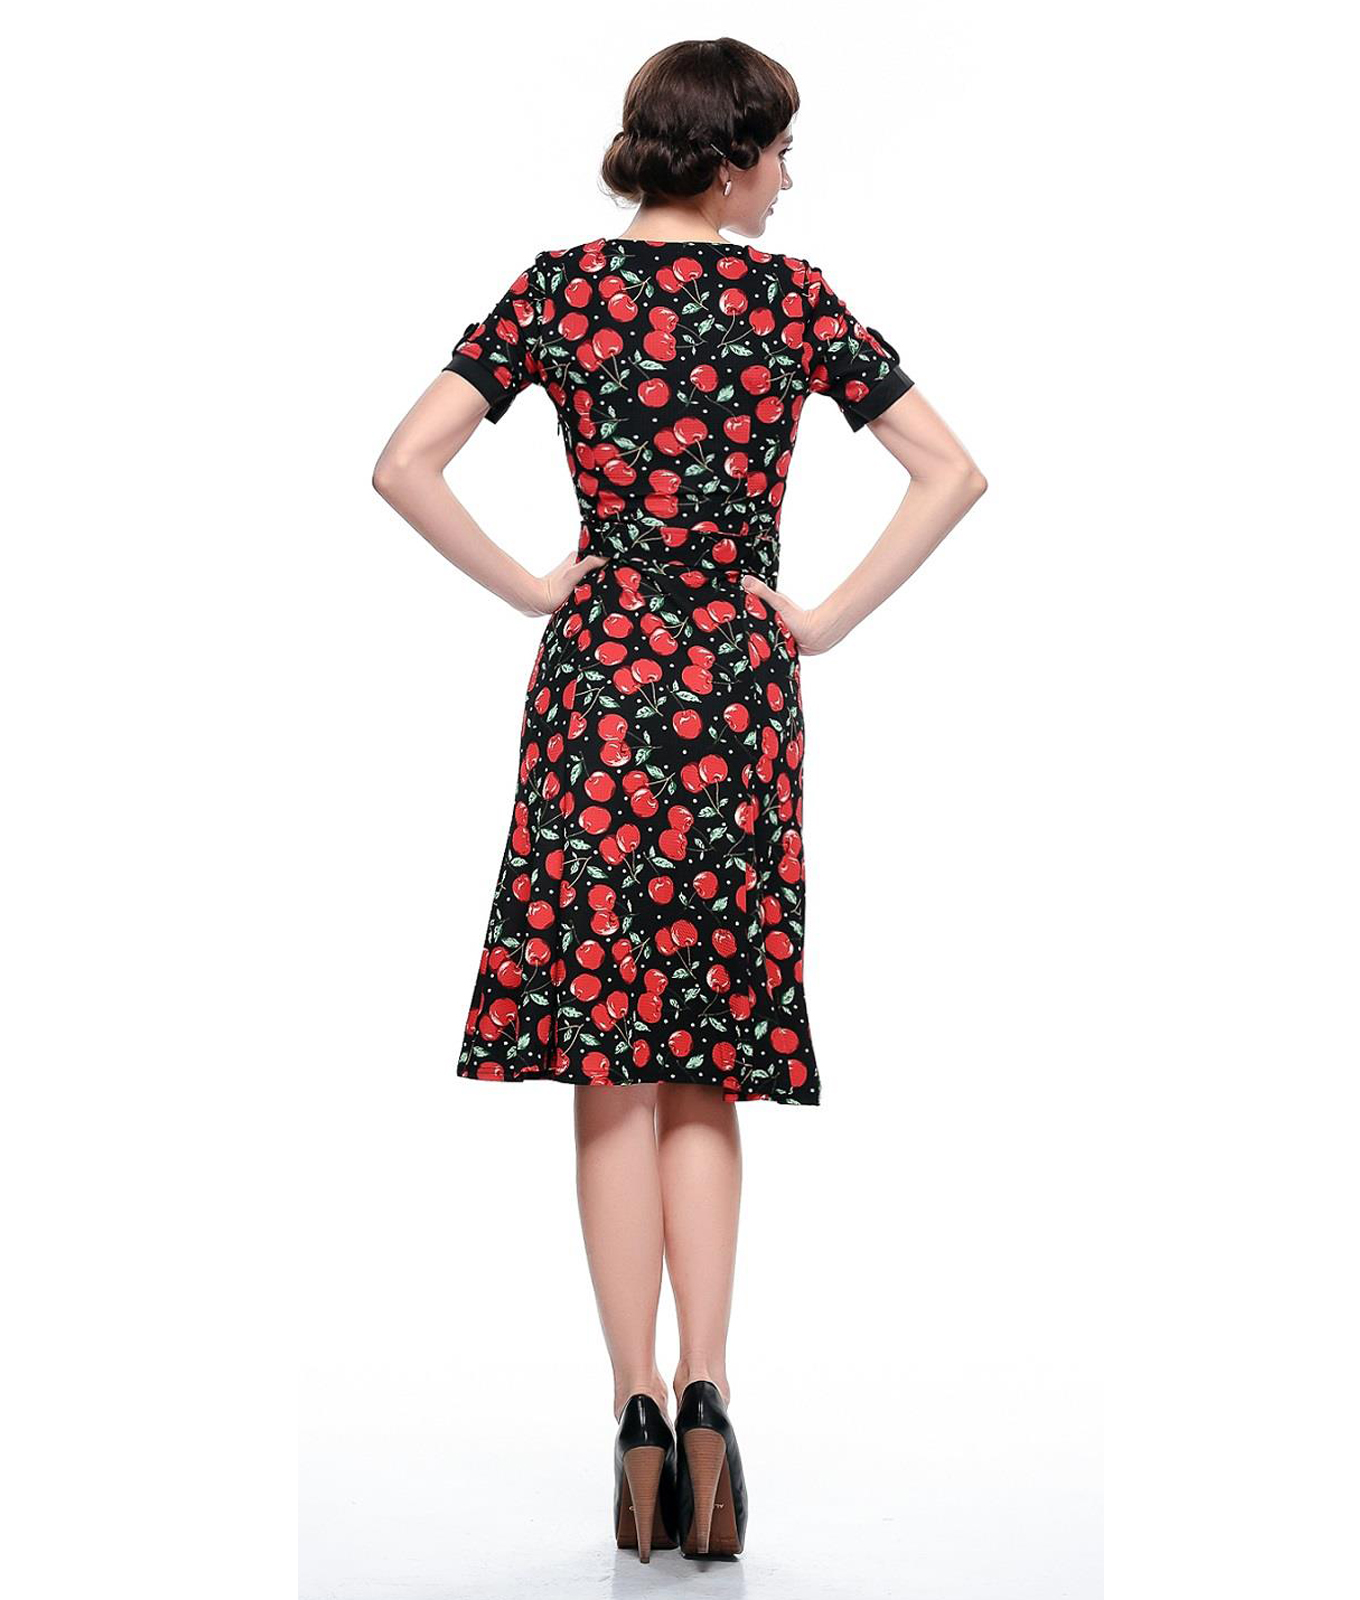 Poisoned 40s 50s Vintage Style Cherry Print A Line Dress